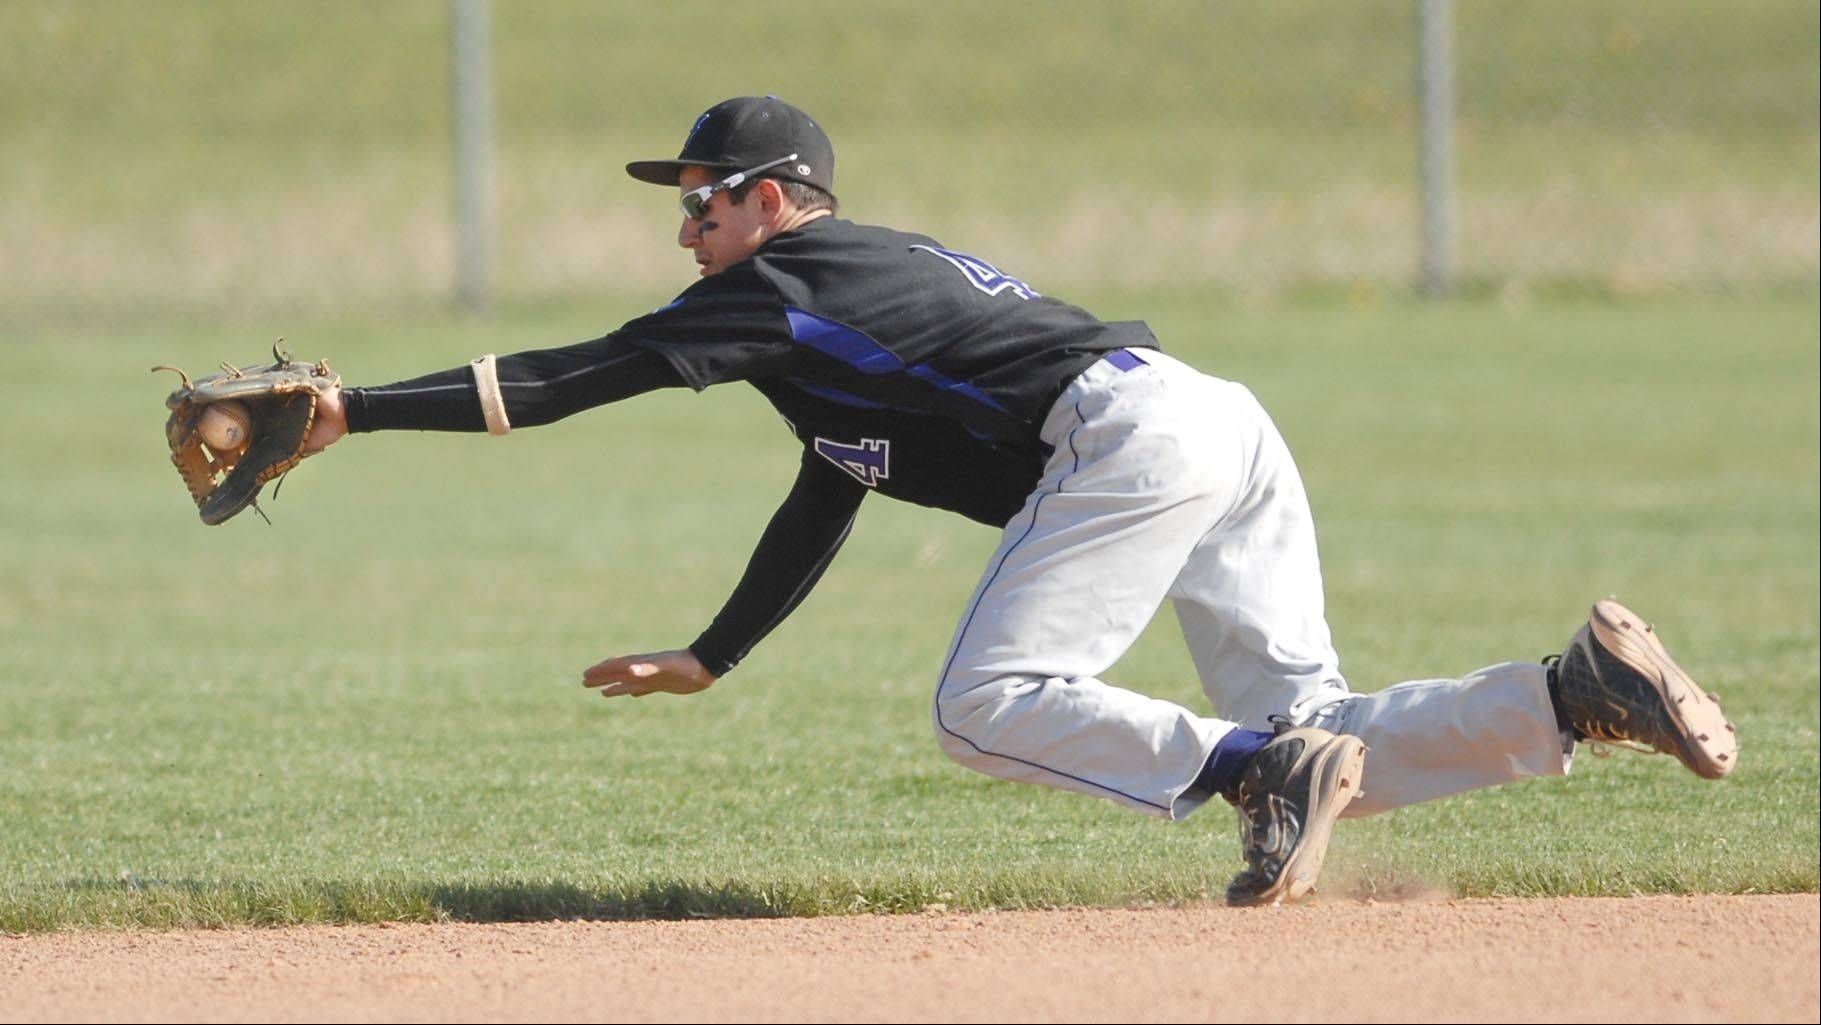 Hampshire shortstop Michael Laramie grabs a ground ball last season against Burlington Central.